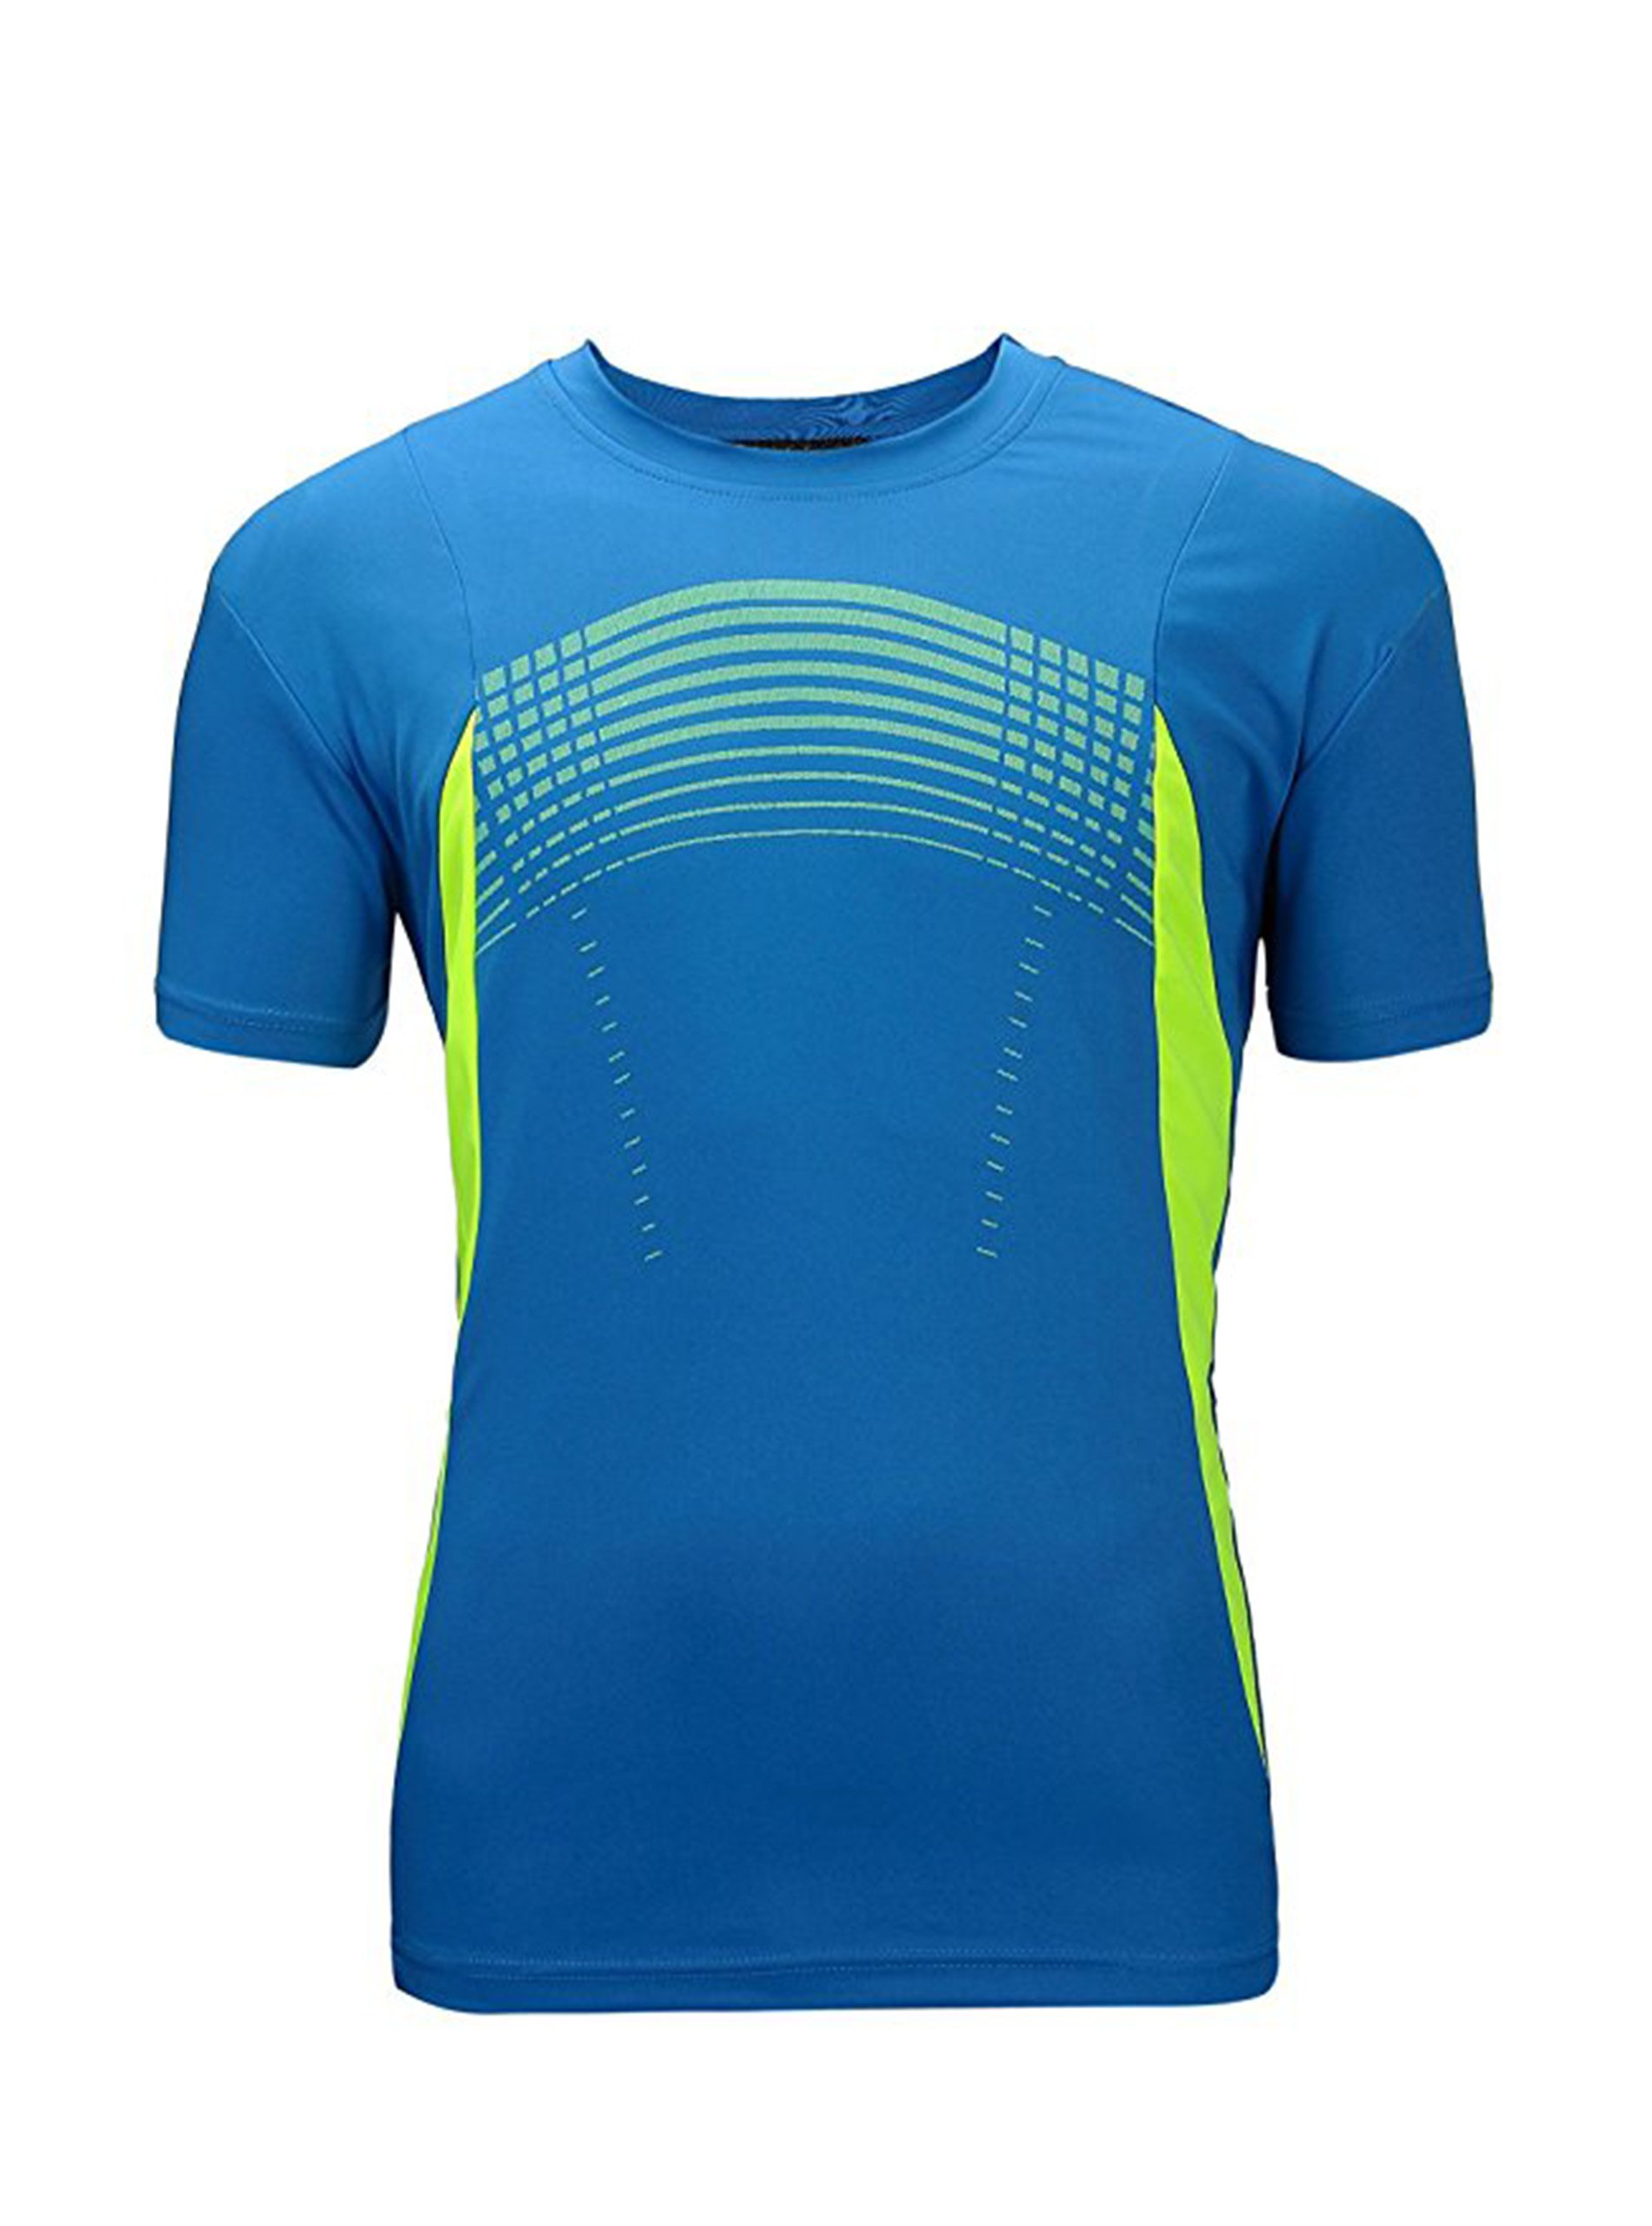 ZITY Men's Athletic Shirts Quick Dry Short Sleeve T-Shirt Running Workout Lightweight Soft Stretchy Tee